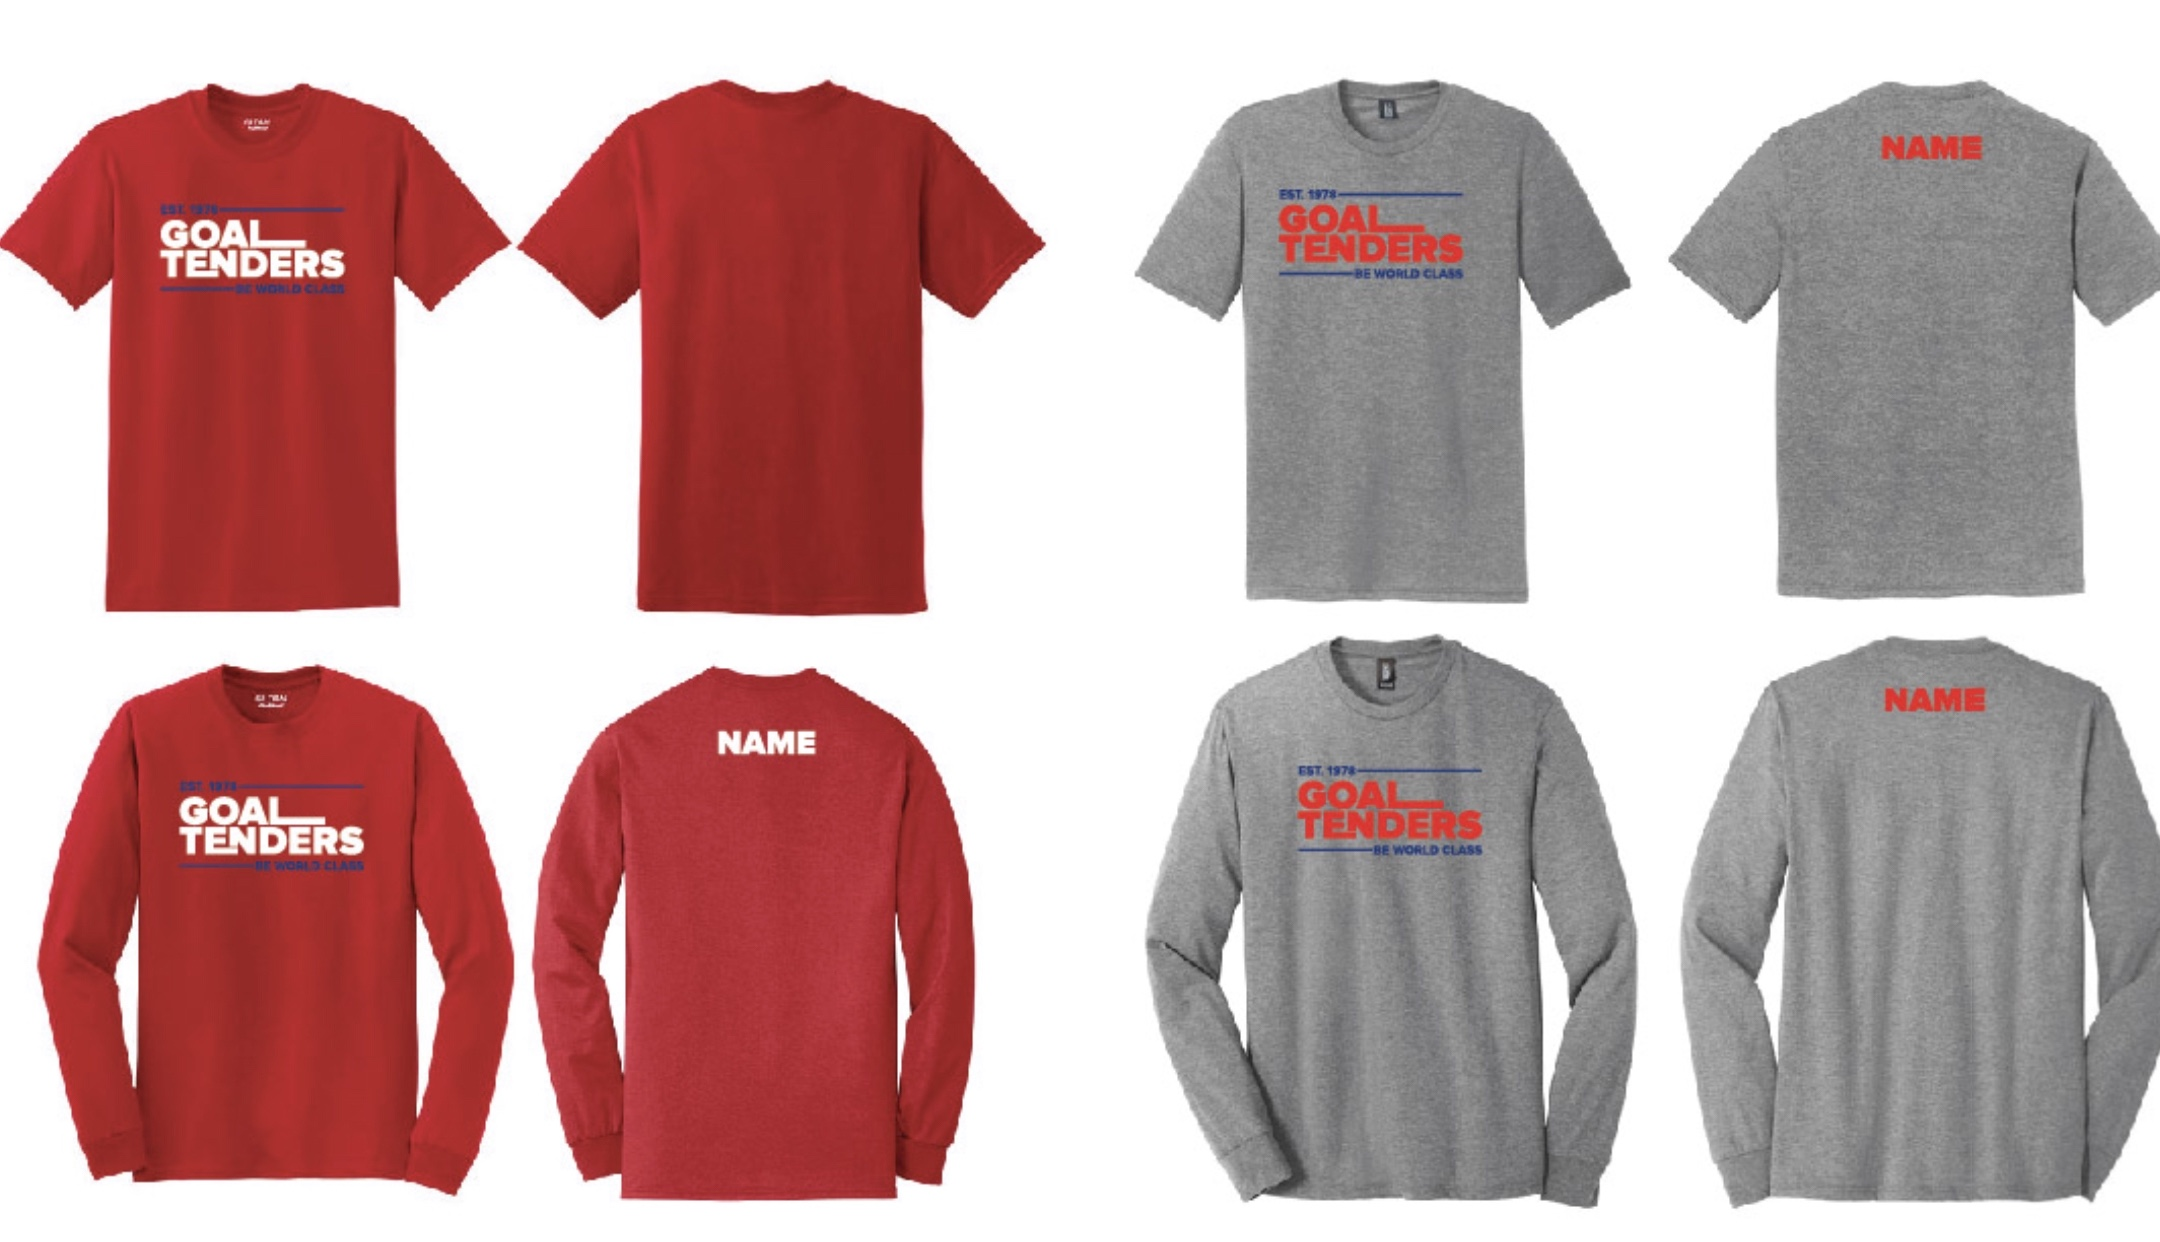 Goal Tender t-shirts and spirit gear